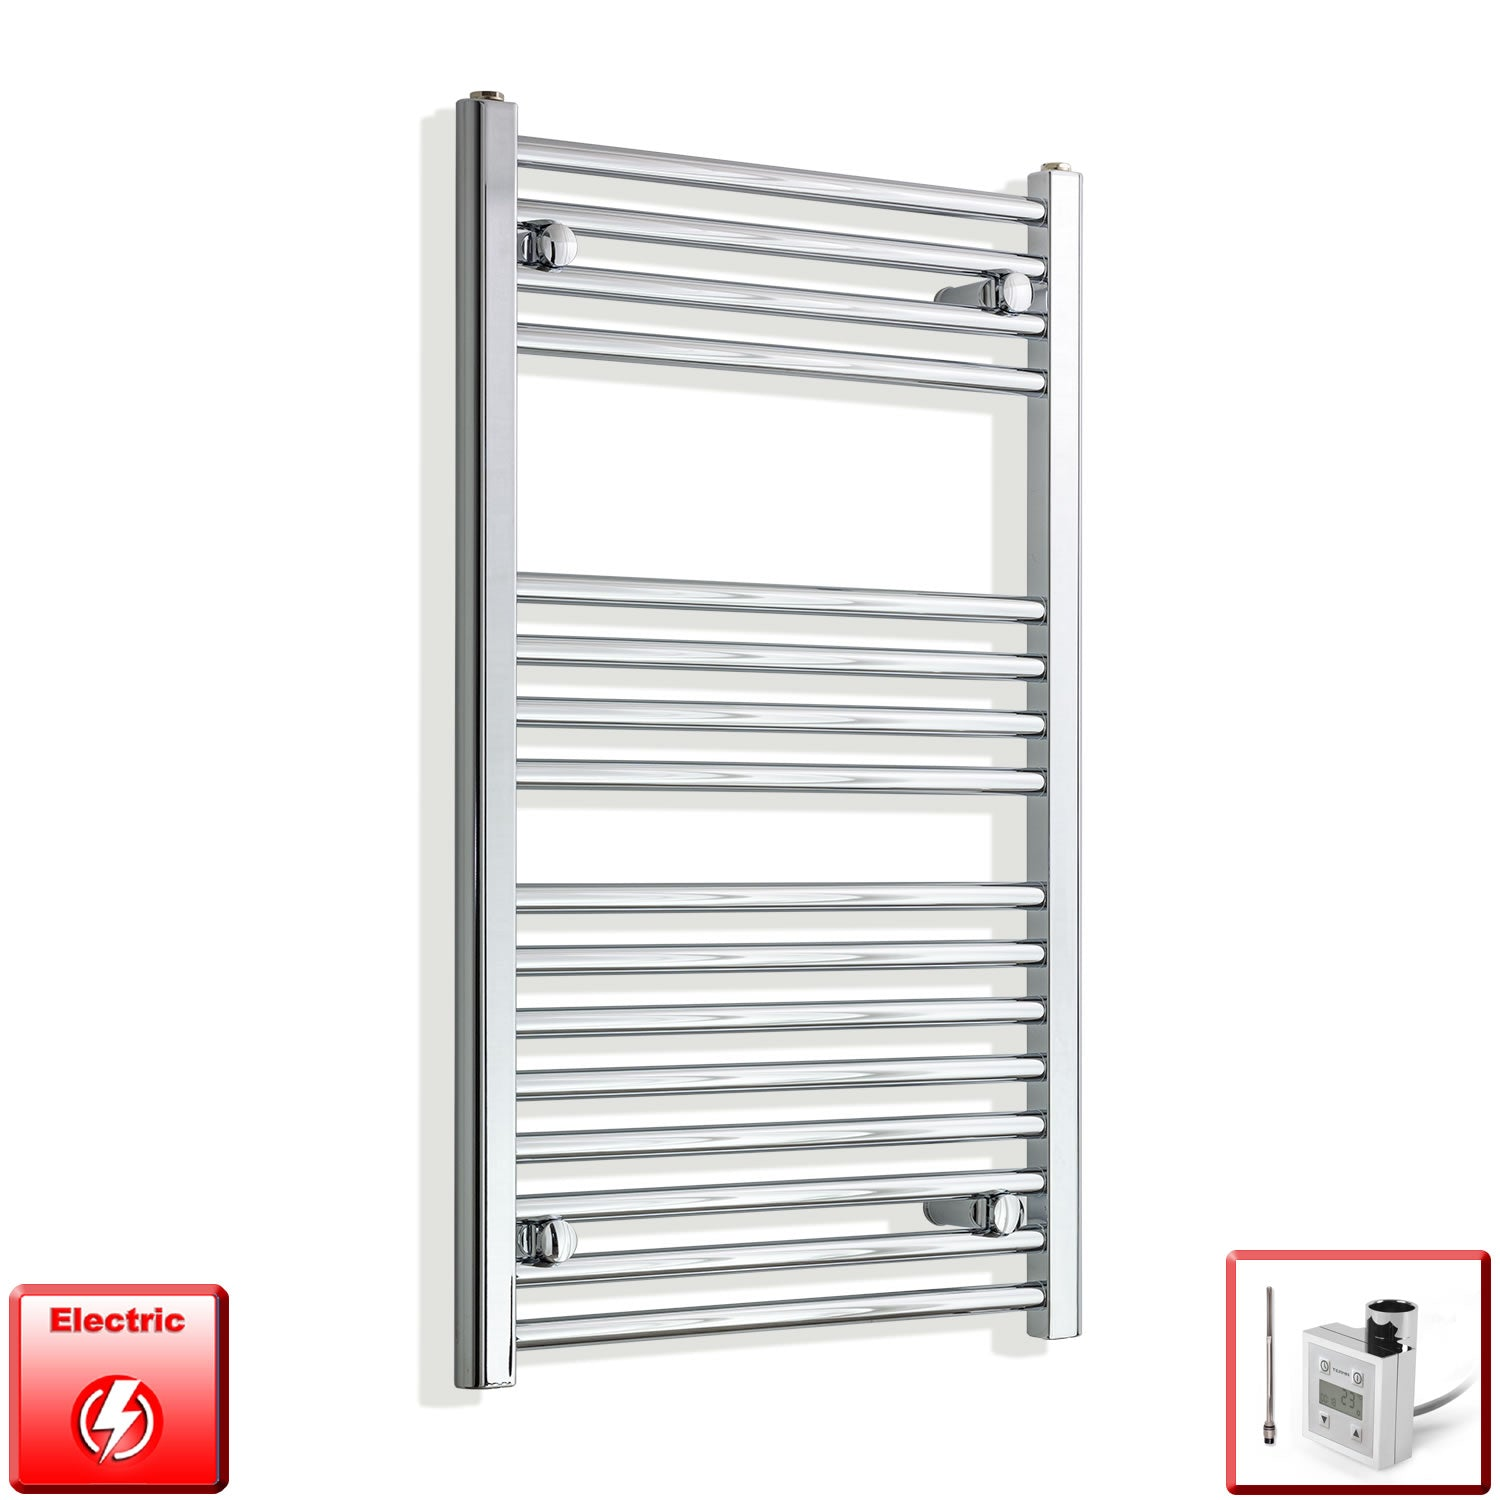 550mm Wide 900mm High Pre-Filled Chrome Electric Towel Rail Radiator With Thermostatic KTX3 Element